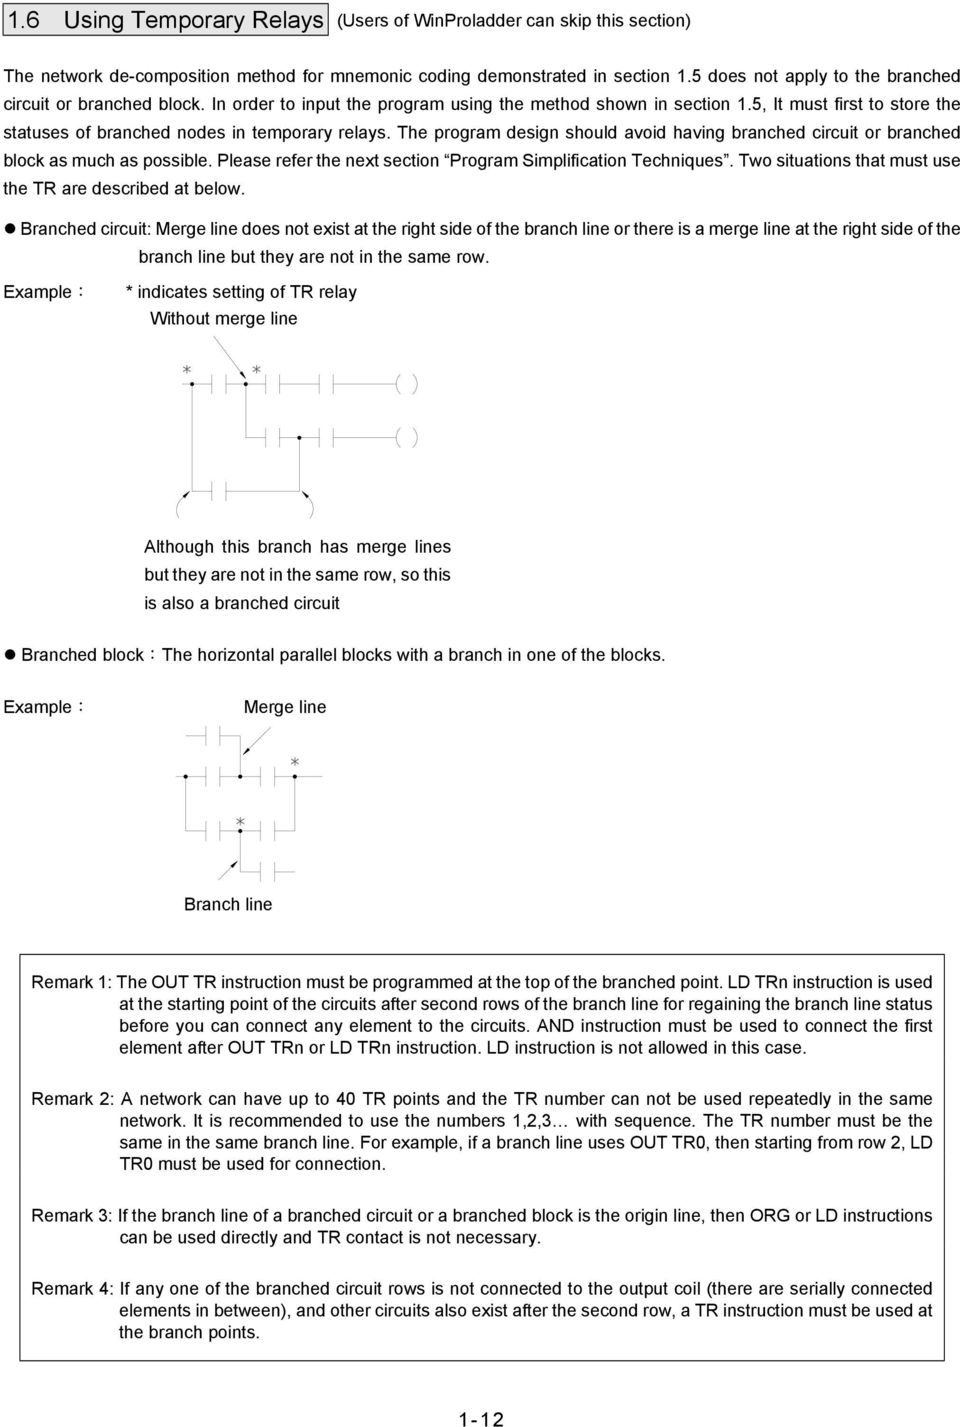 Chapter 1 Plc Ladder Diagram And The Coding Rules Of Mnemonic Pdf Latched Circuit Example 5 It Must First To Store Statuses Branched Nodes In Temporary Relays